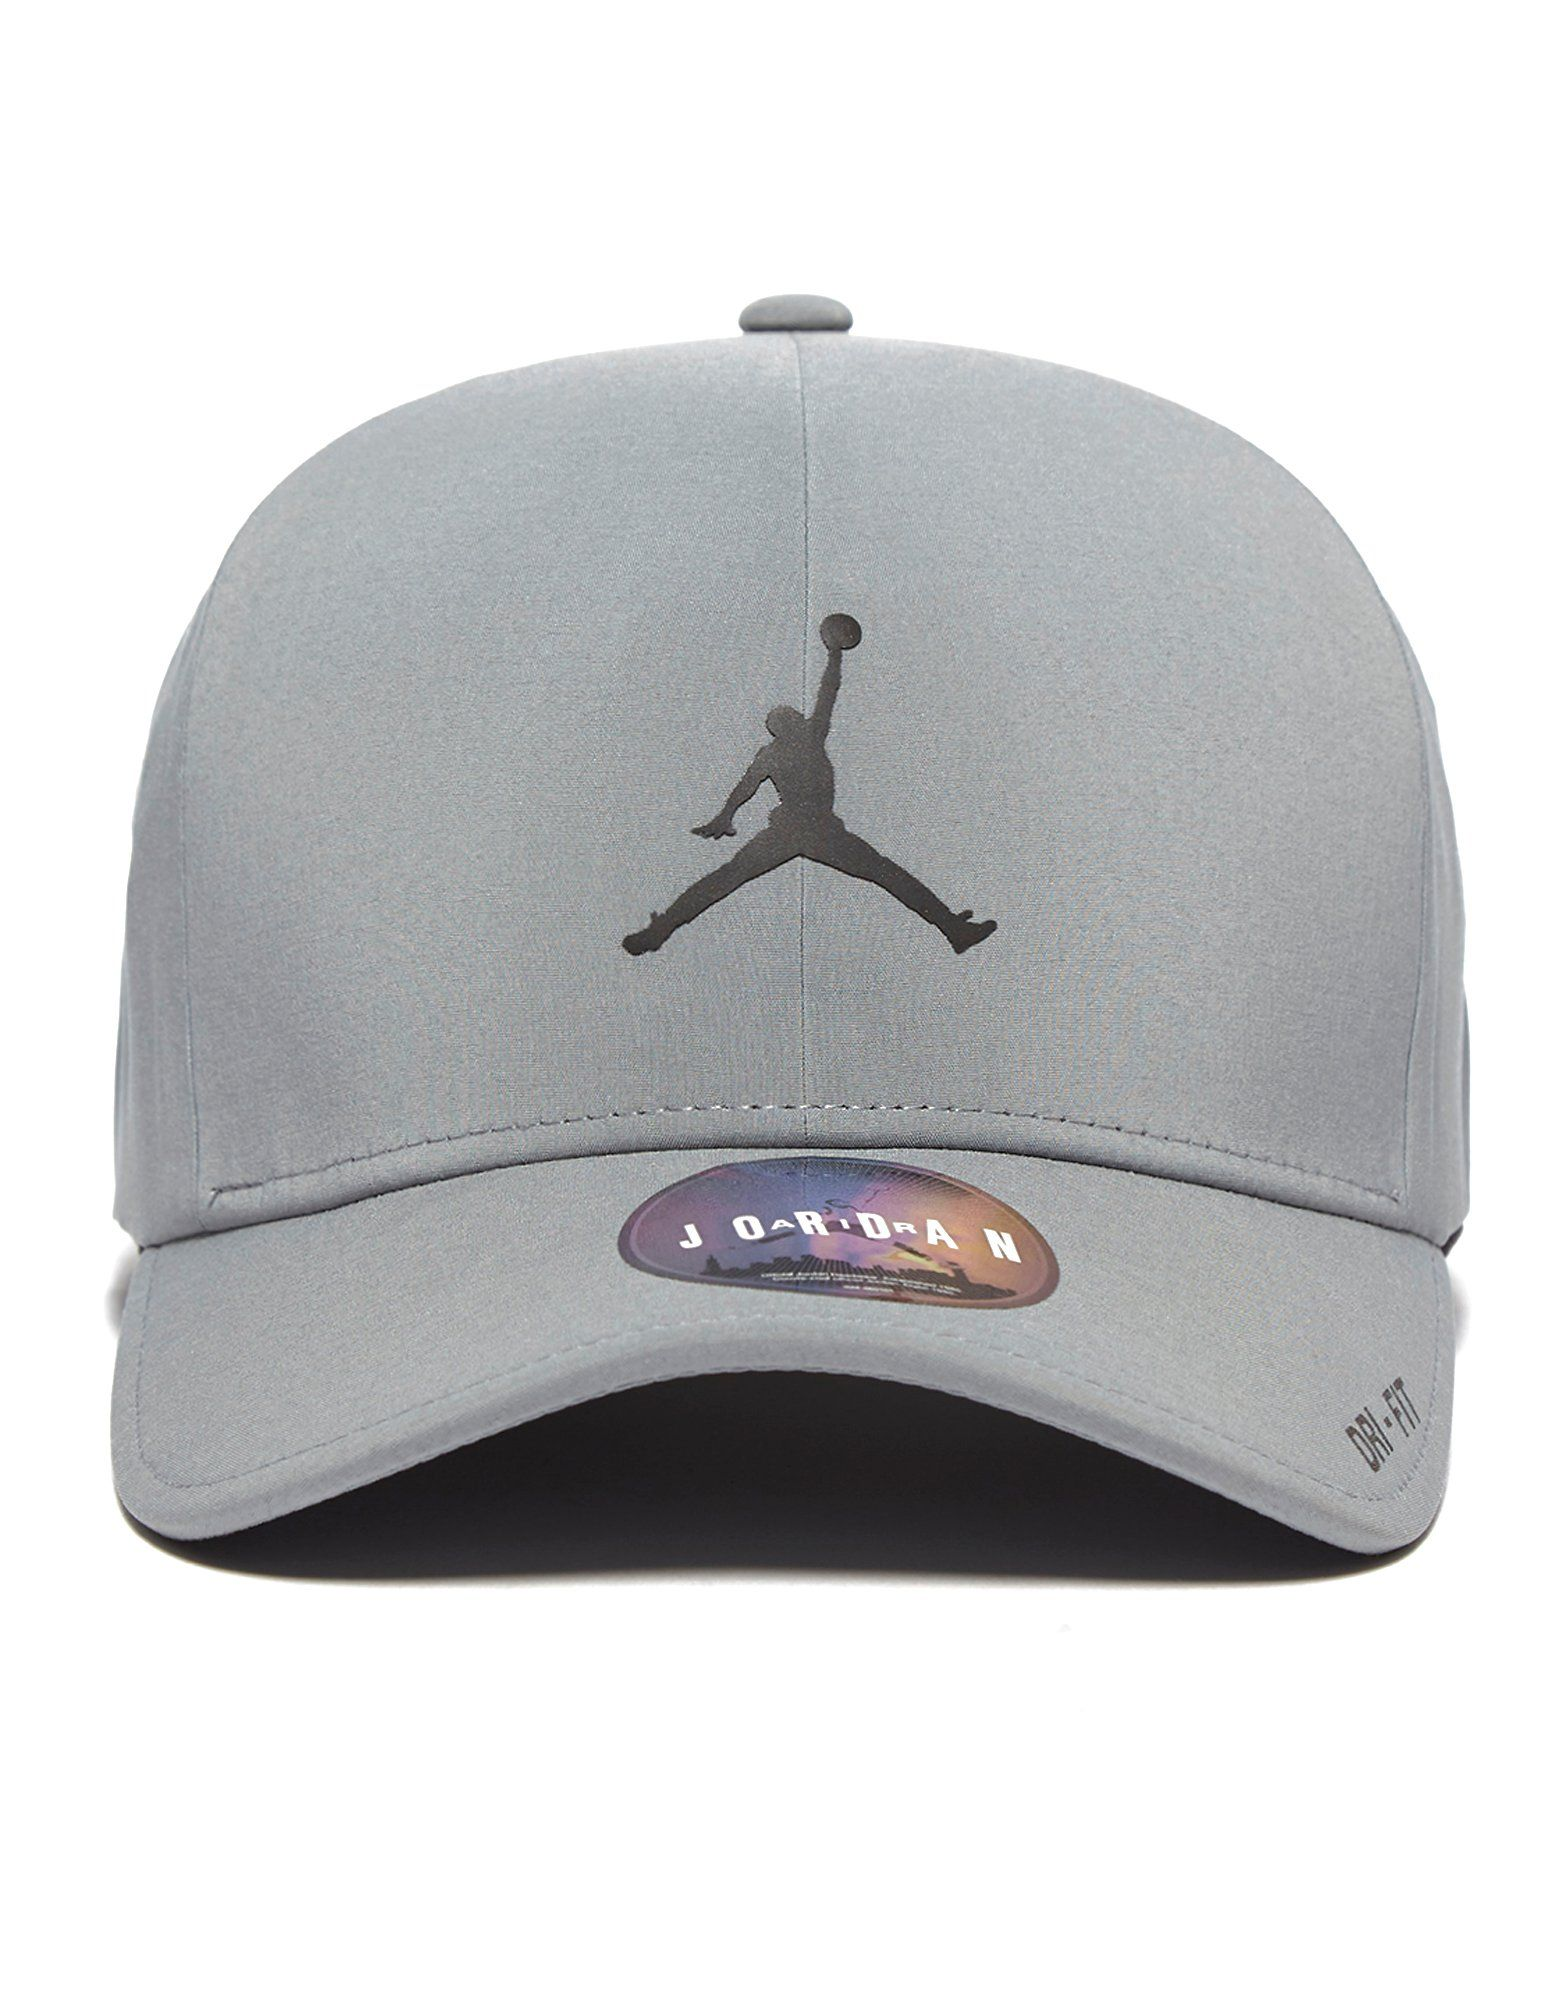 2b53ef41d2a4d ... new zealand jordan classic jumpman cap jd sports hot sale 050eb eaa5b